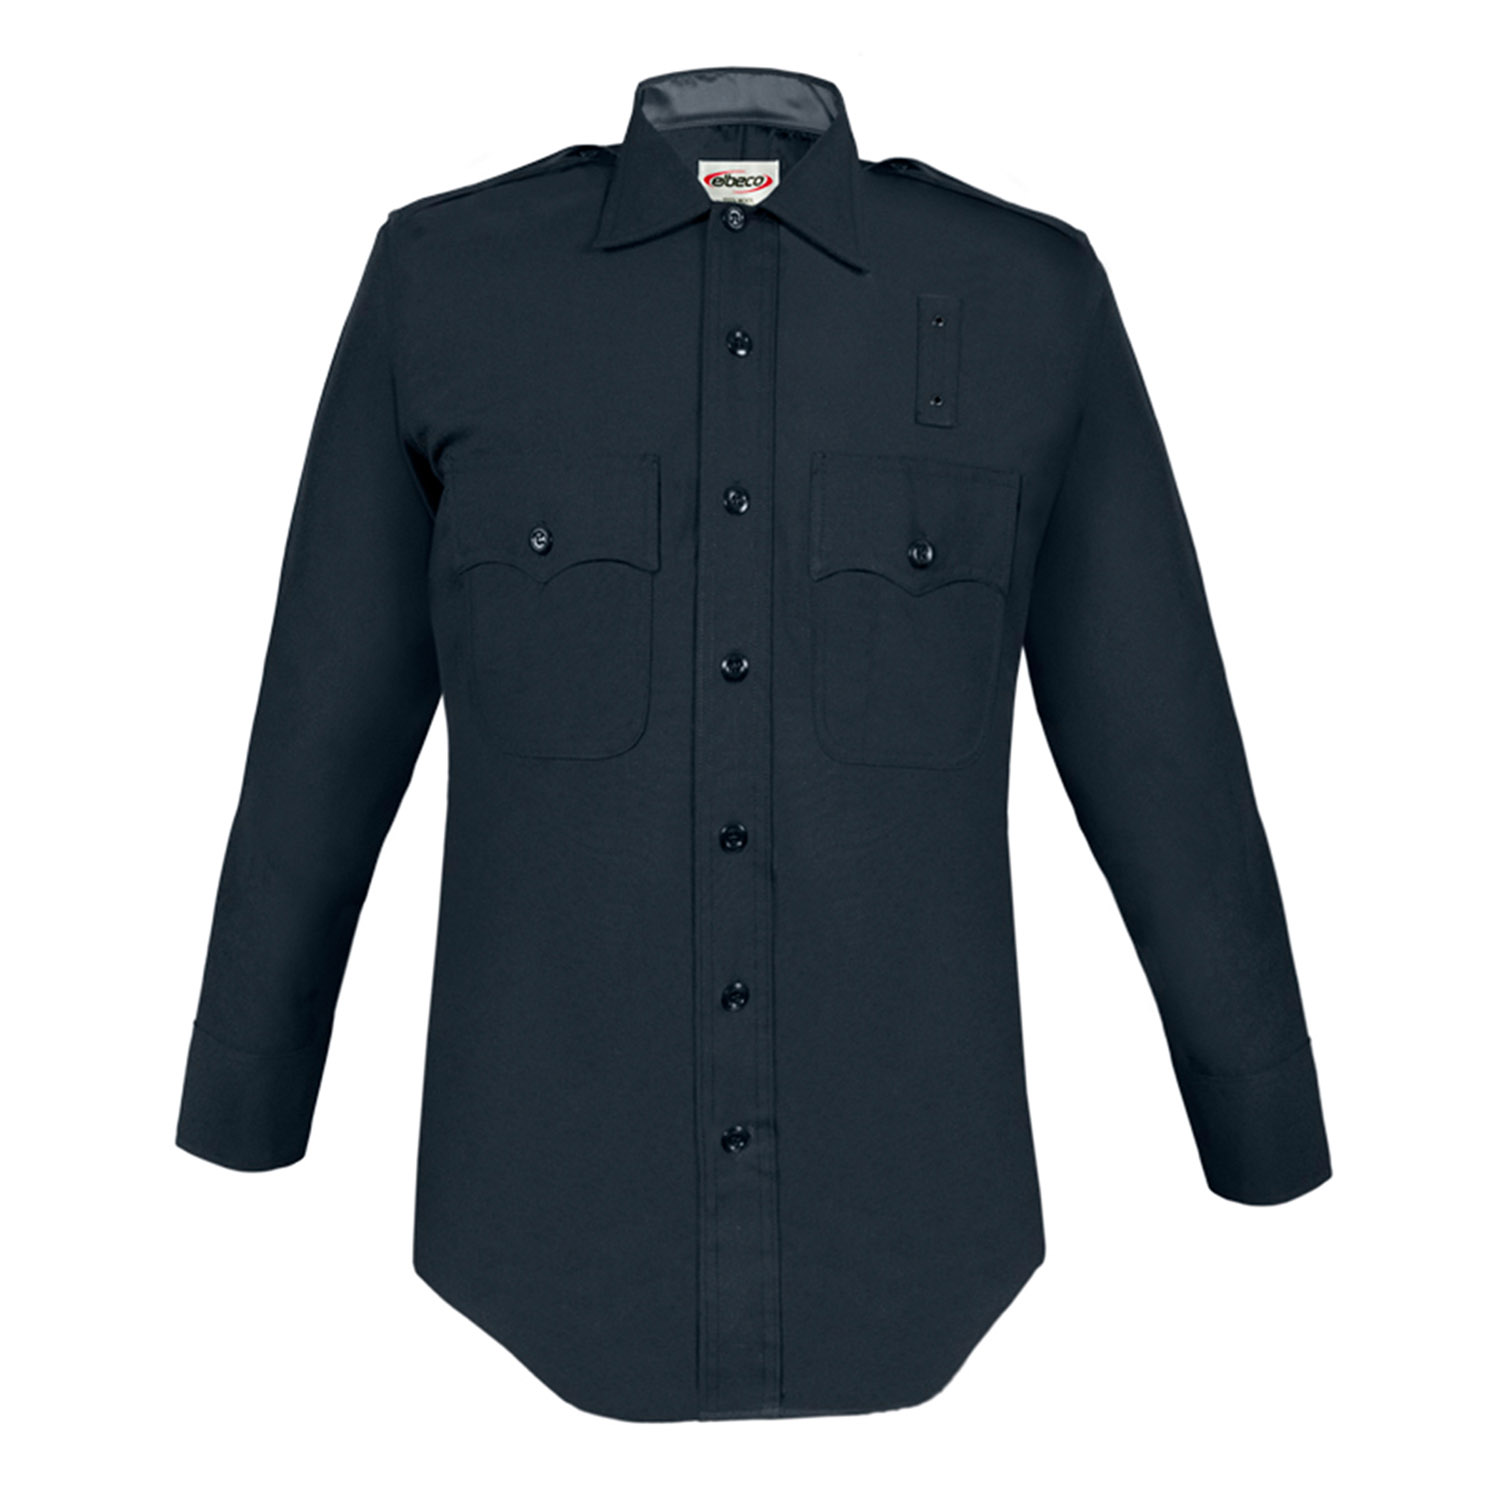 Elbeco LAPD Long Sleeve Shirt 100% Wool